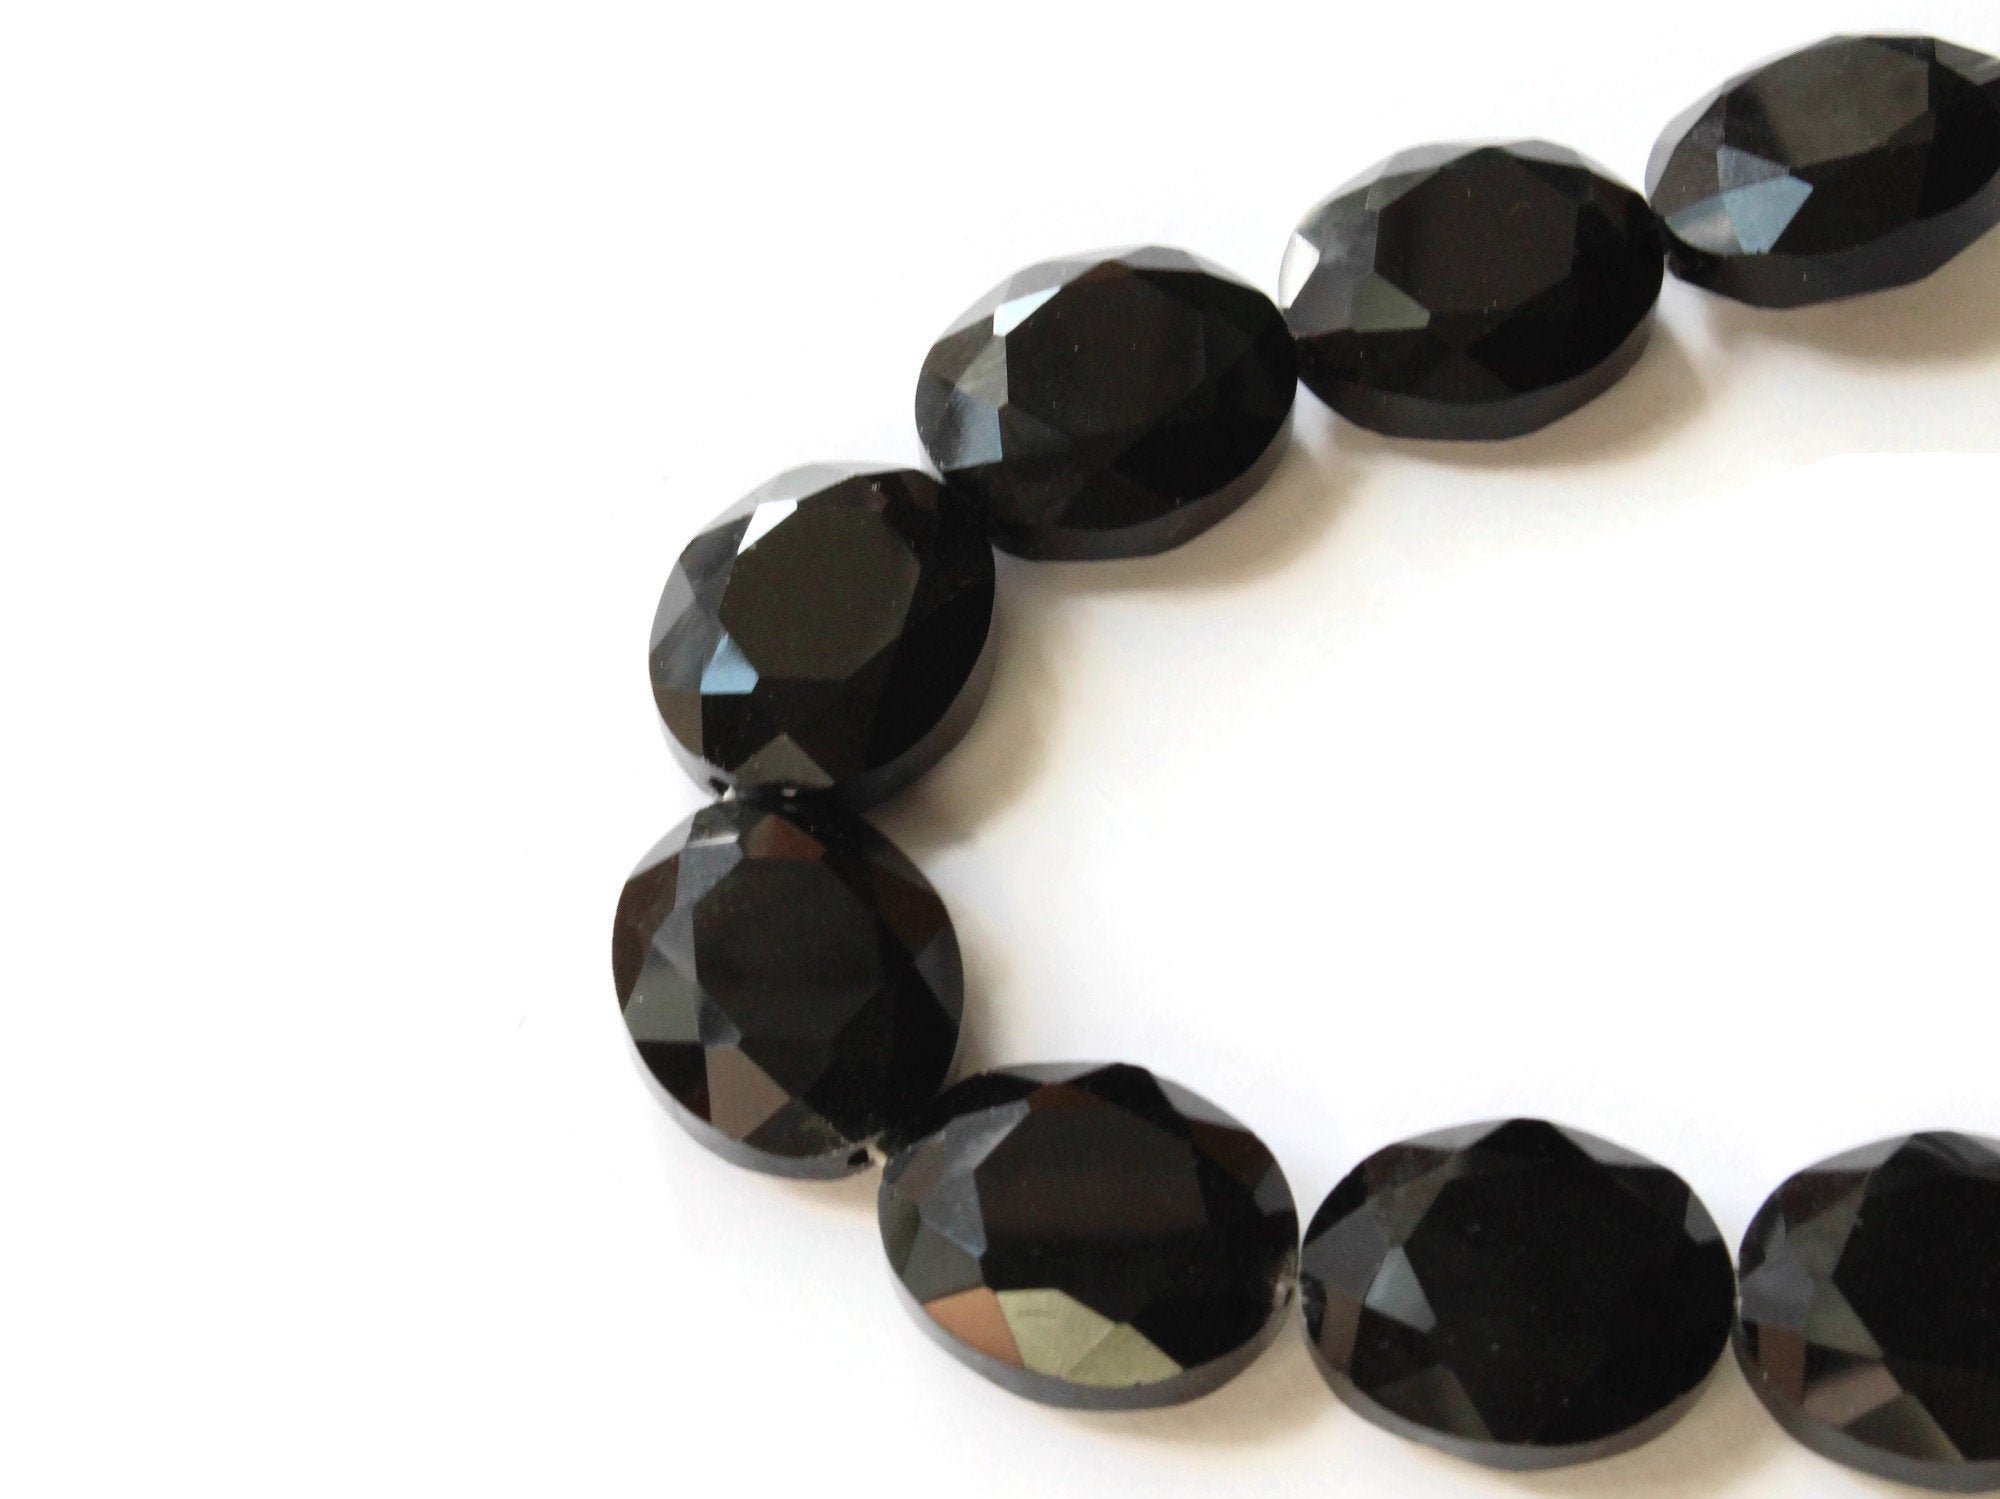 48pcs TS56-8 Oval Crystal Glass Faceted beads 16mm Sparkly Black Rose-